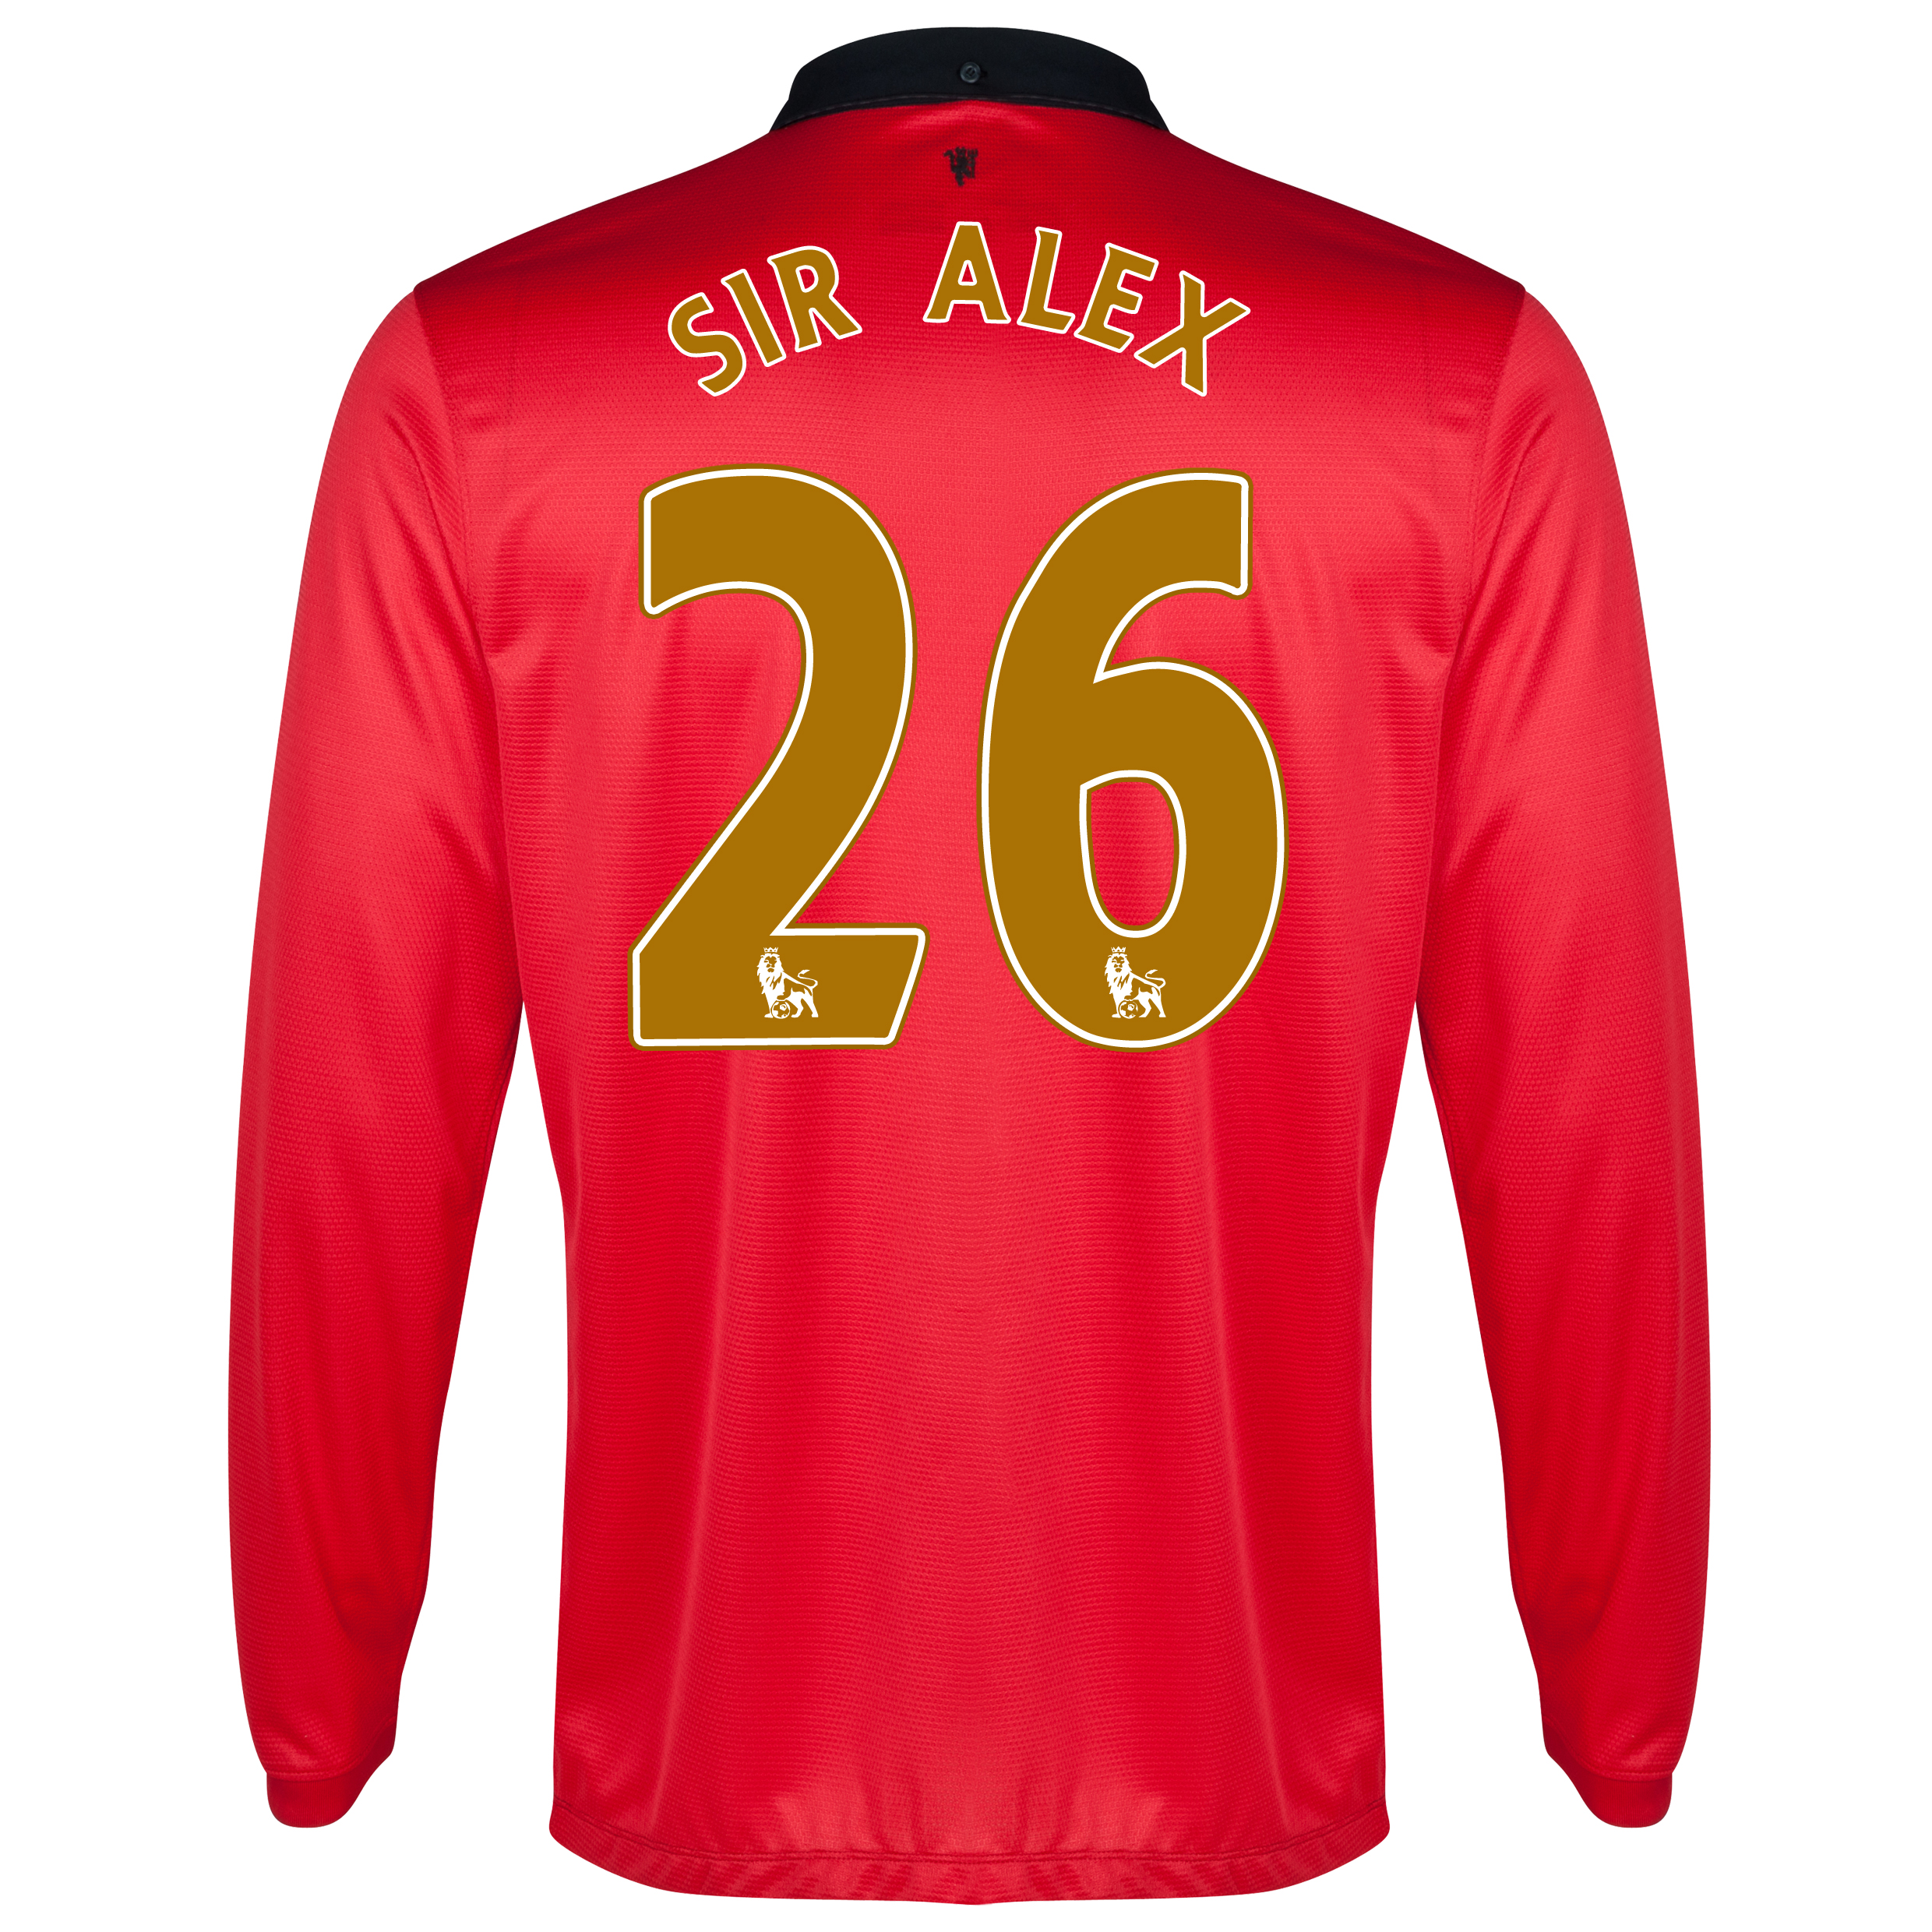 Manchester United Home Shirt 2013/14 - Long Sleeved with Sir Alex 26 printing